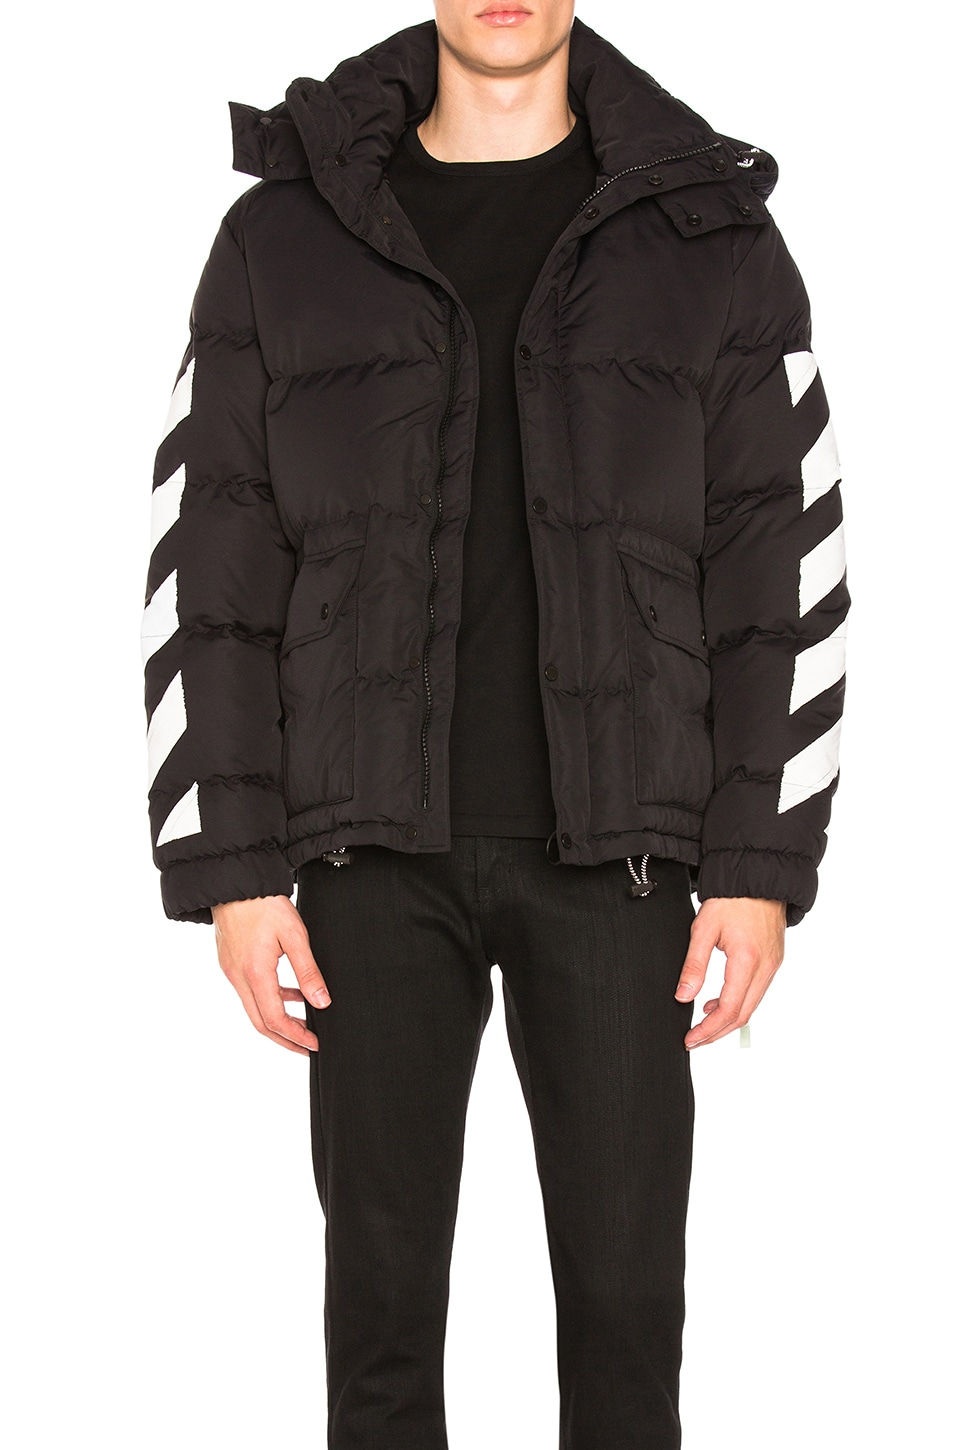 OFF-WHITE Diagonal Brushed Down Jacket in Black & White